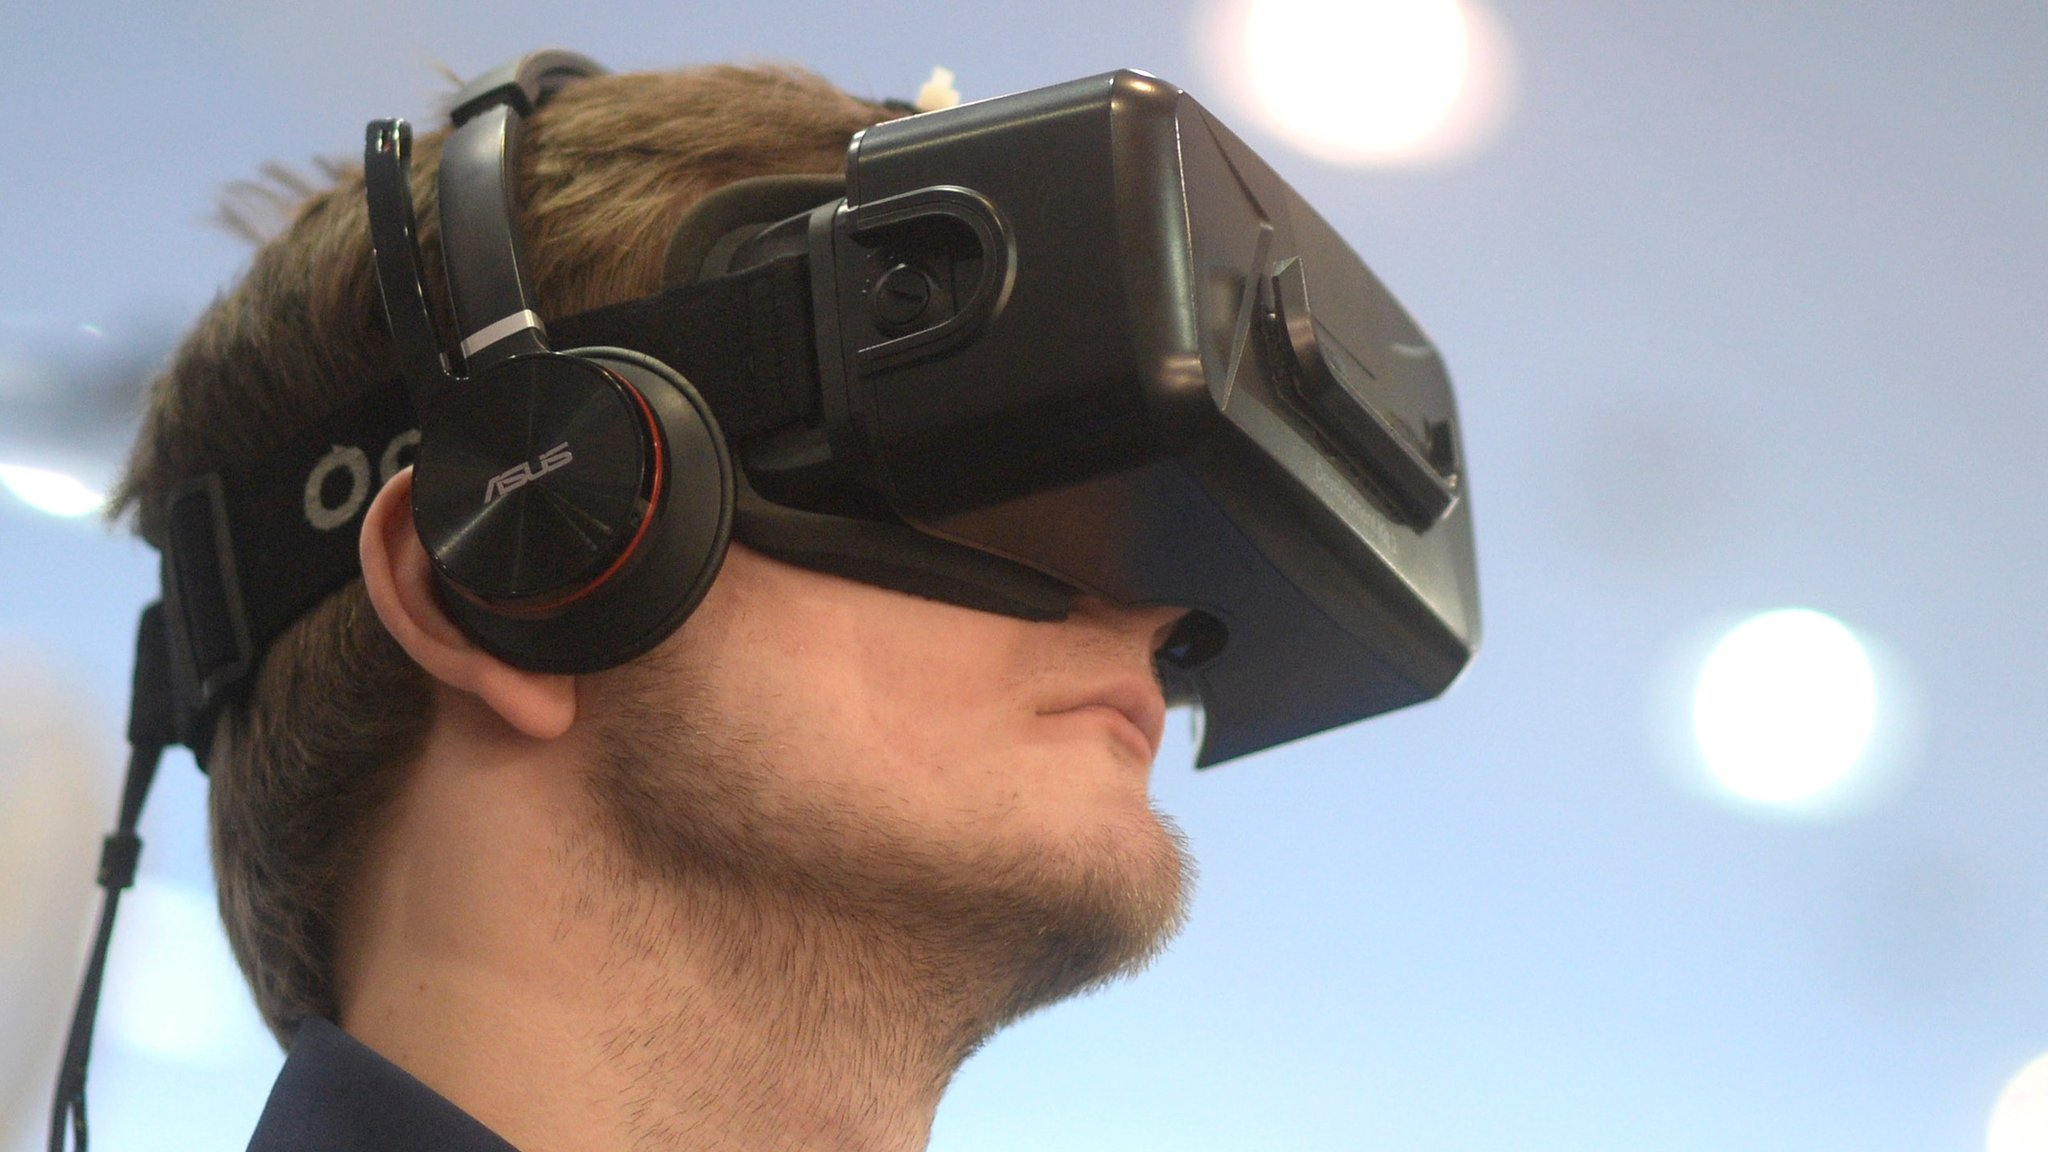 Oculus lifts headset game restrictions